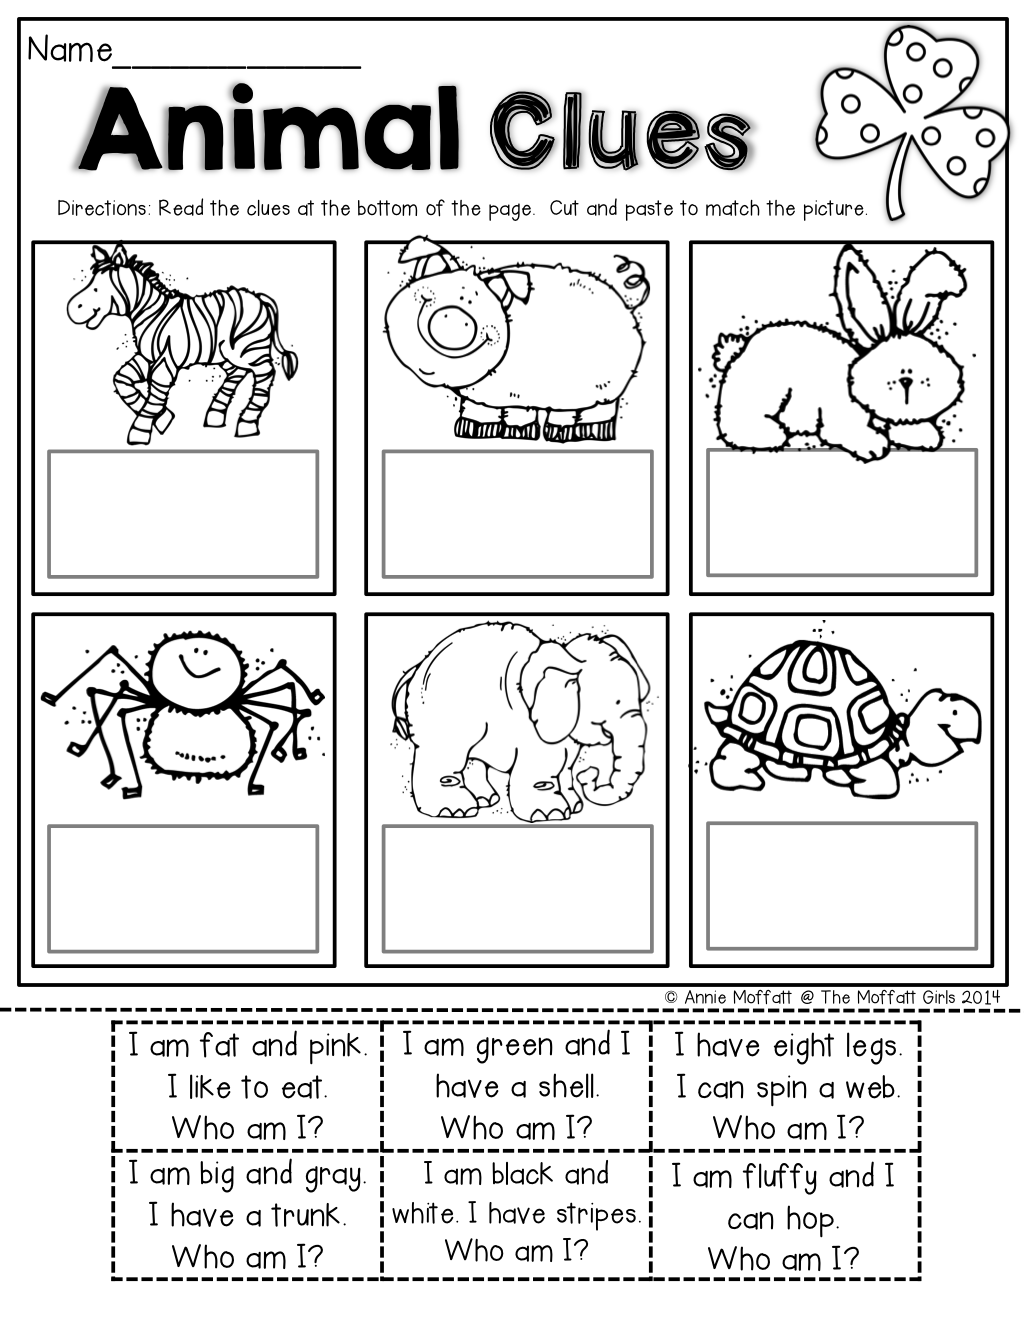 Read Simple Sentence Clues Cut And Paste To Match The Picture Perfect For Beginning Readers